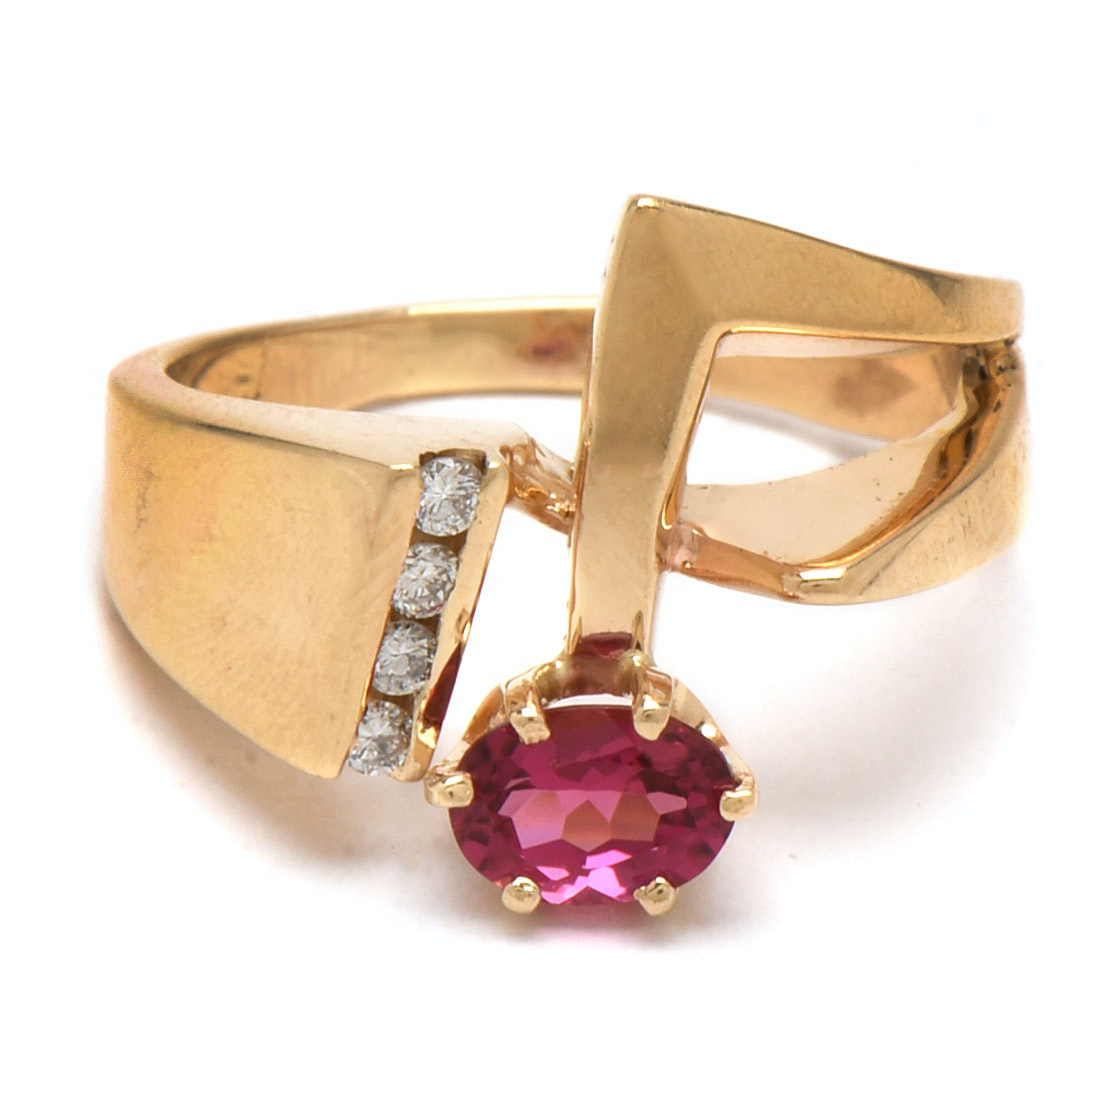 Modernist 14K Yellow Gold Rubellite and Diamond Ring